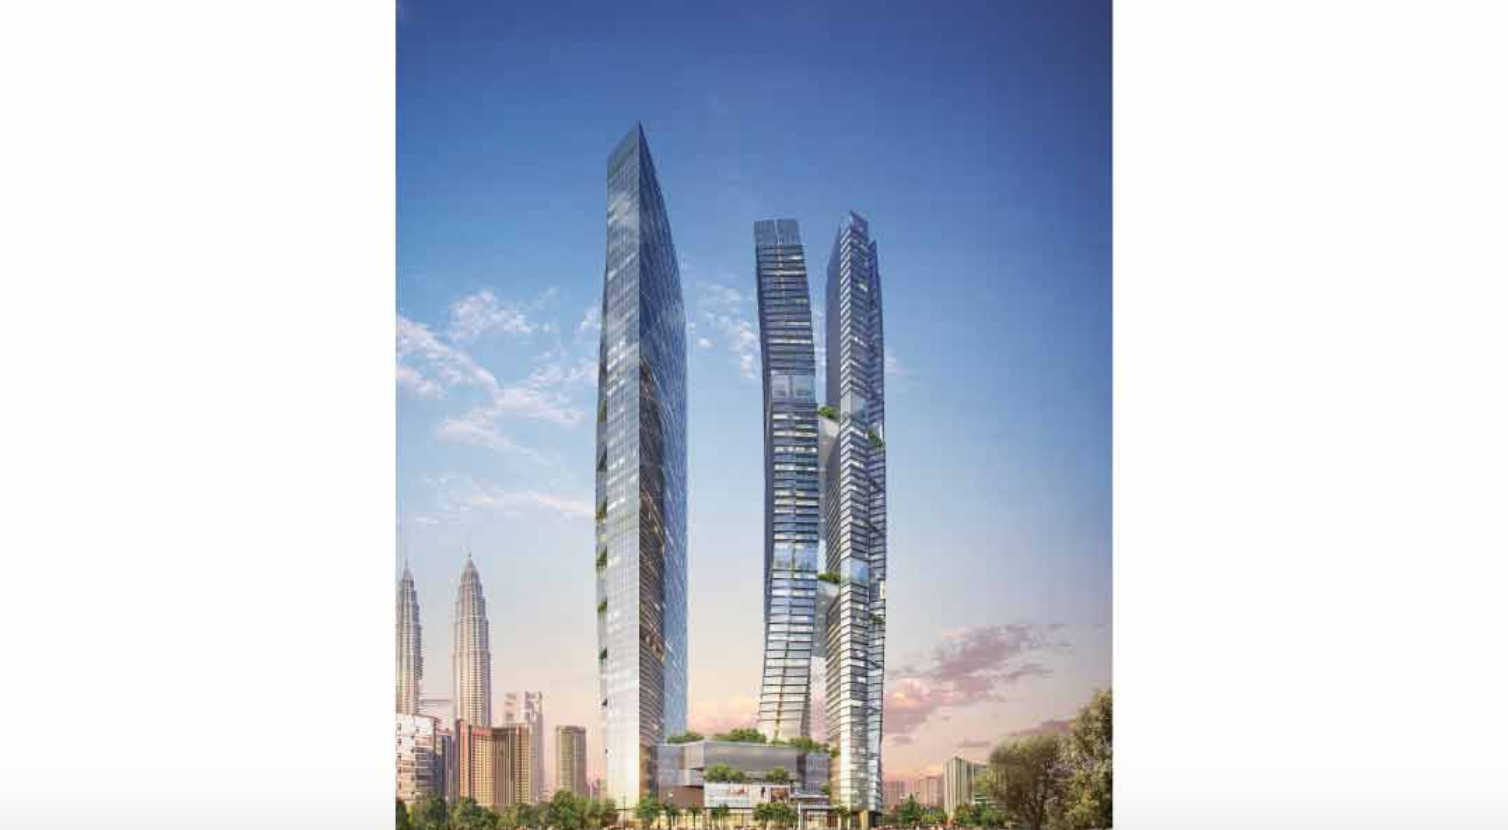 These Skyscrapers Are Set To Become Southeast Asia's Tallest Residential Towers